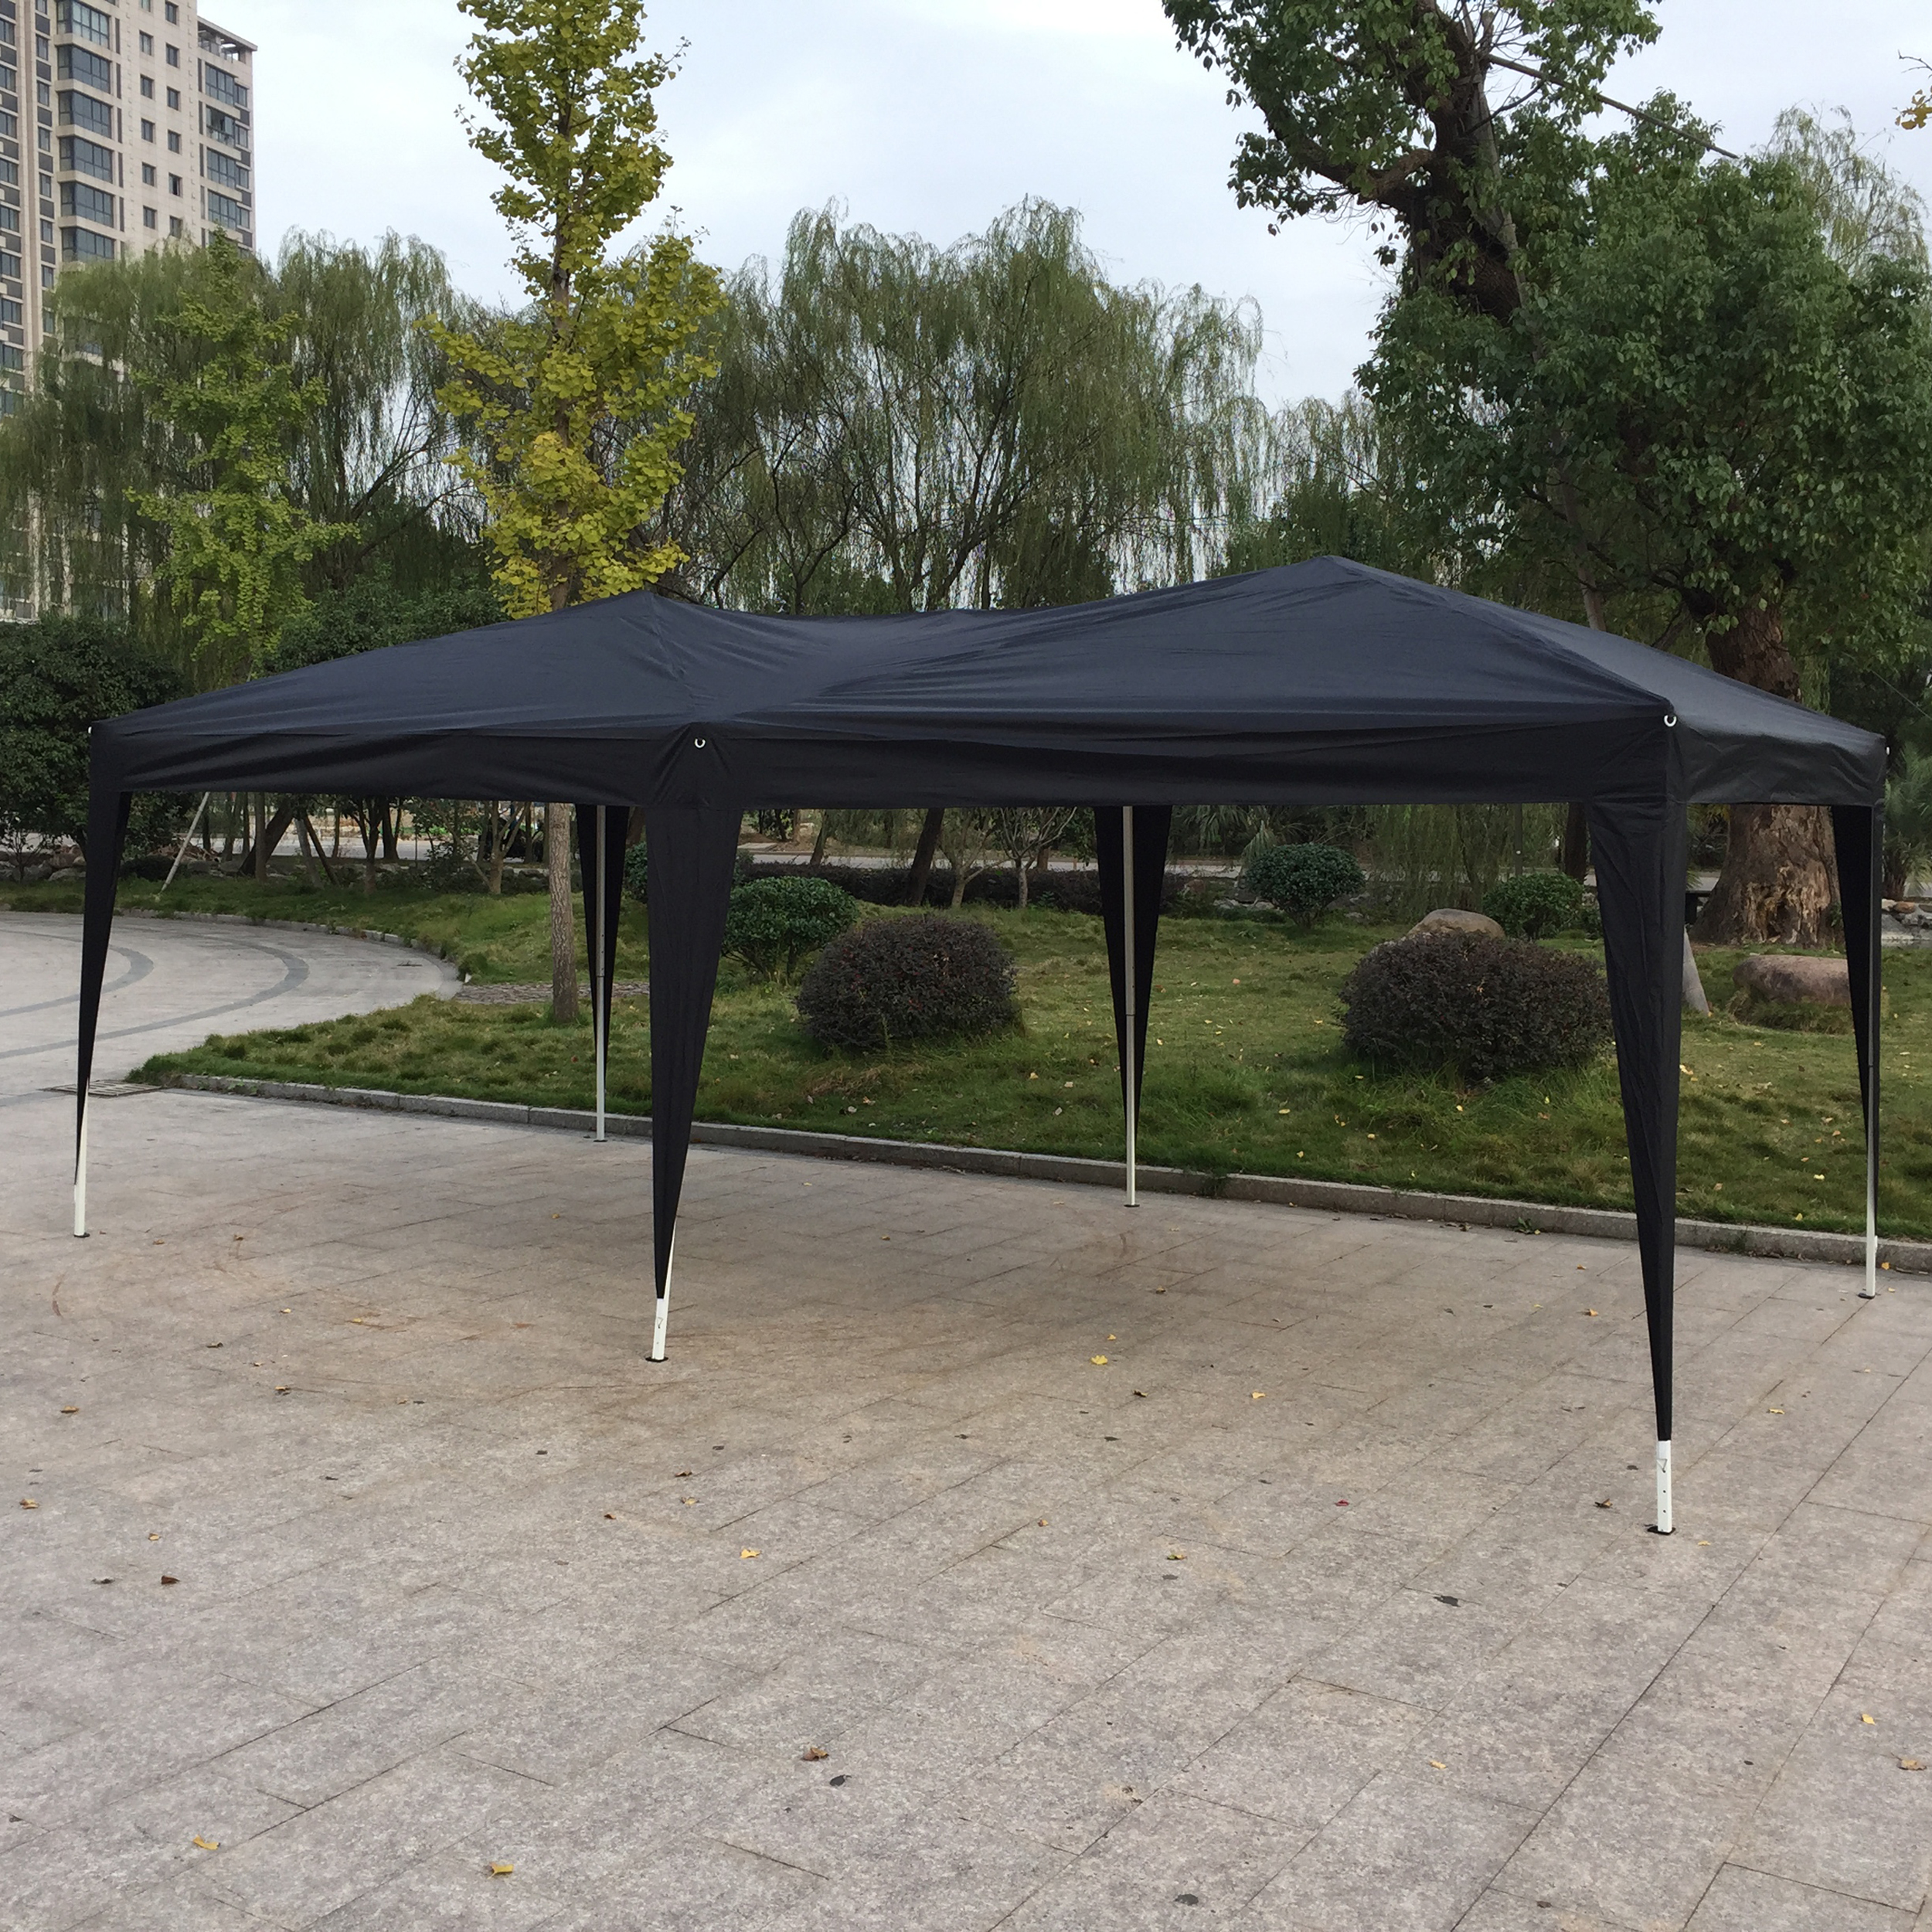 10u0027x 20u0027 EZ Pop UP Wedding Party Tent Gazebo Canopy 6 Sidewalls w/Carry Bag : 10x20 tent with sidewalls - memphite.com